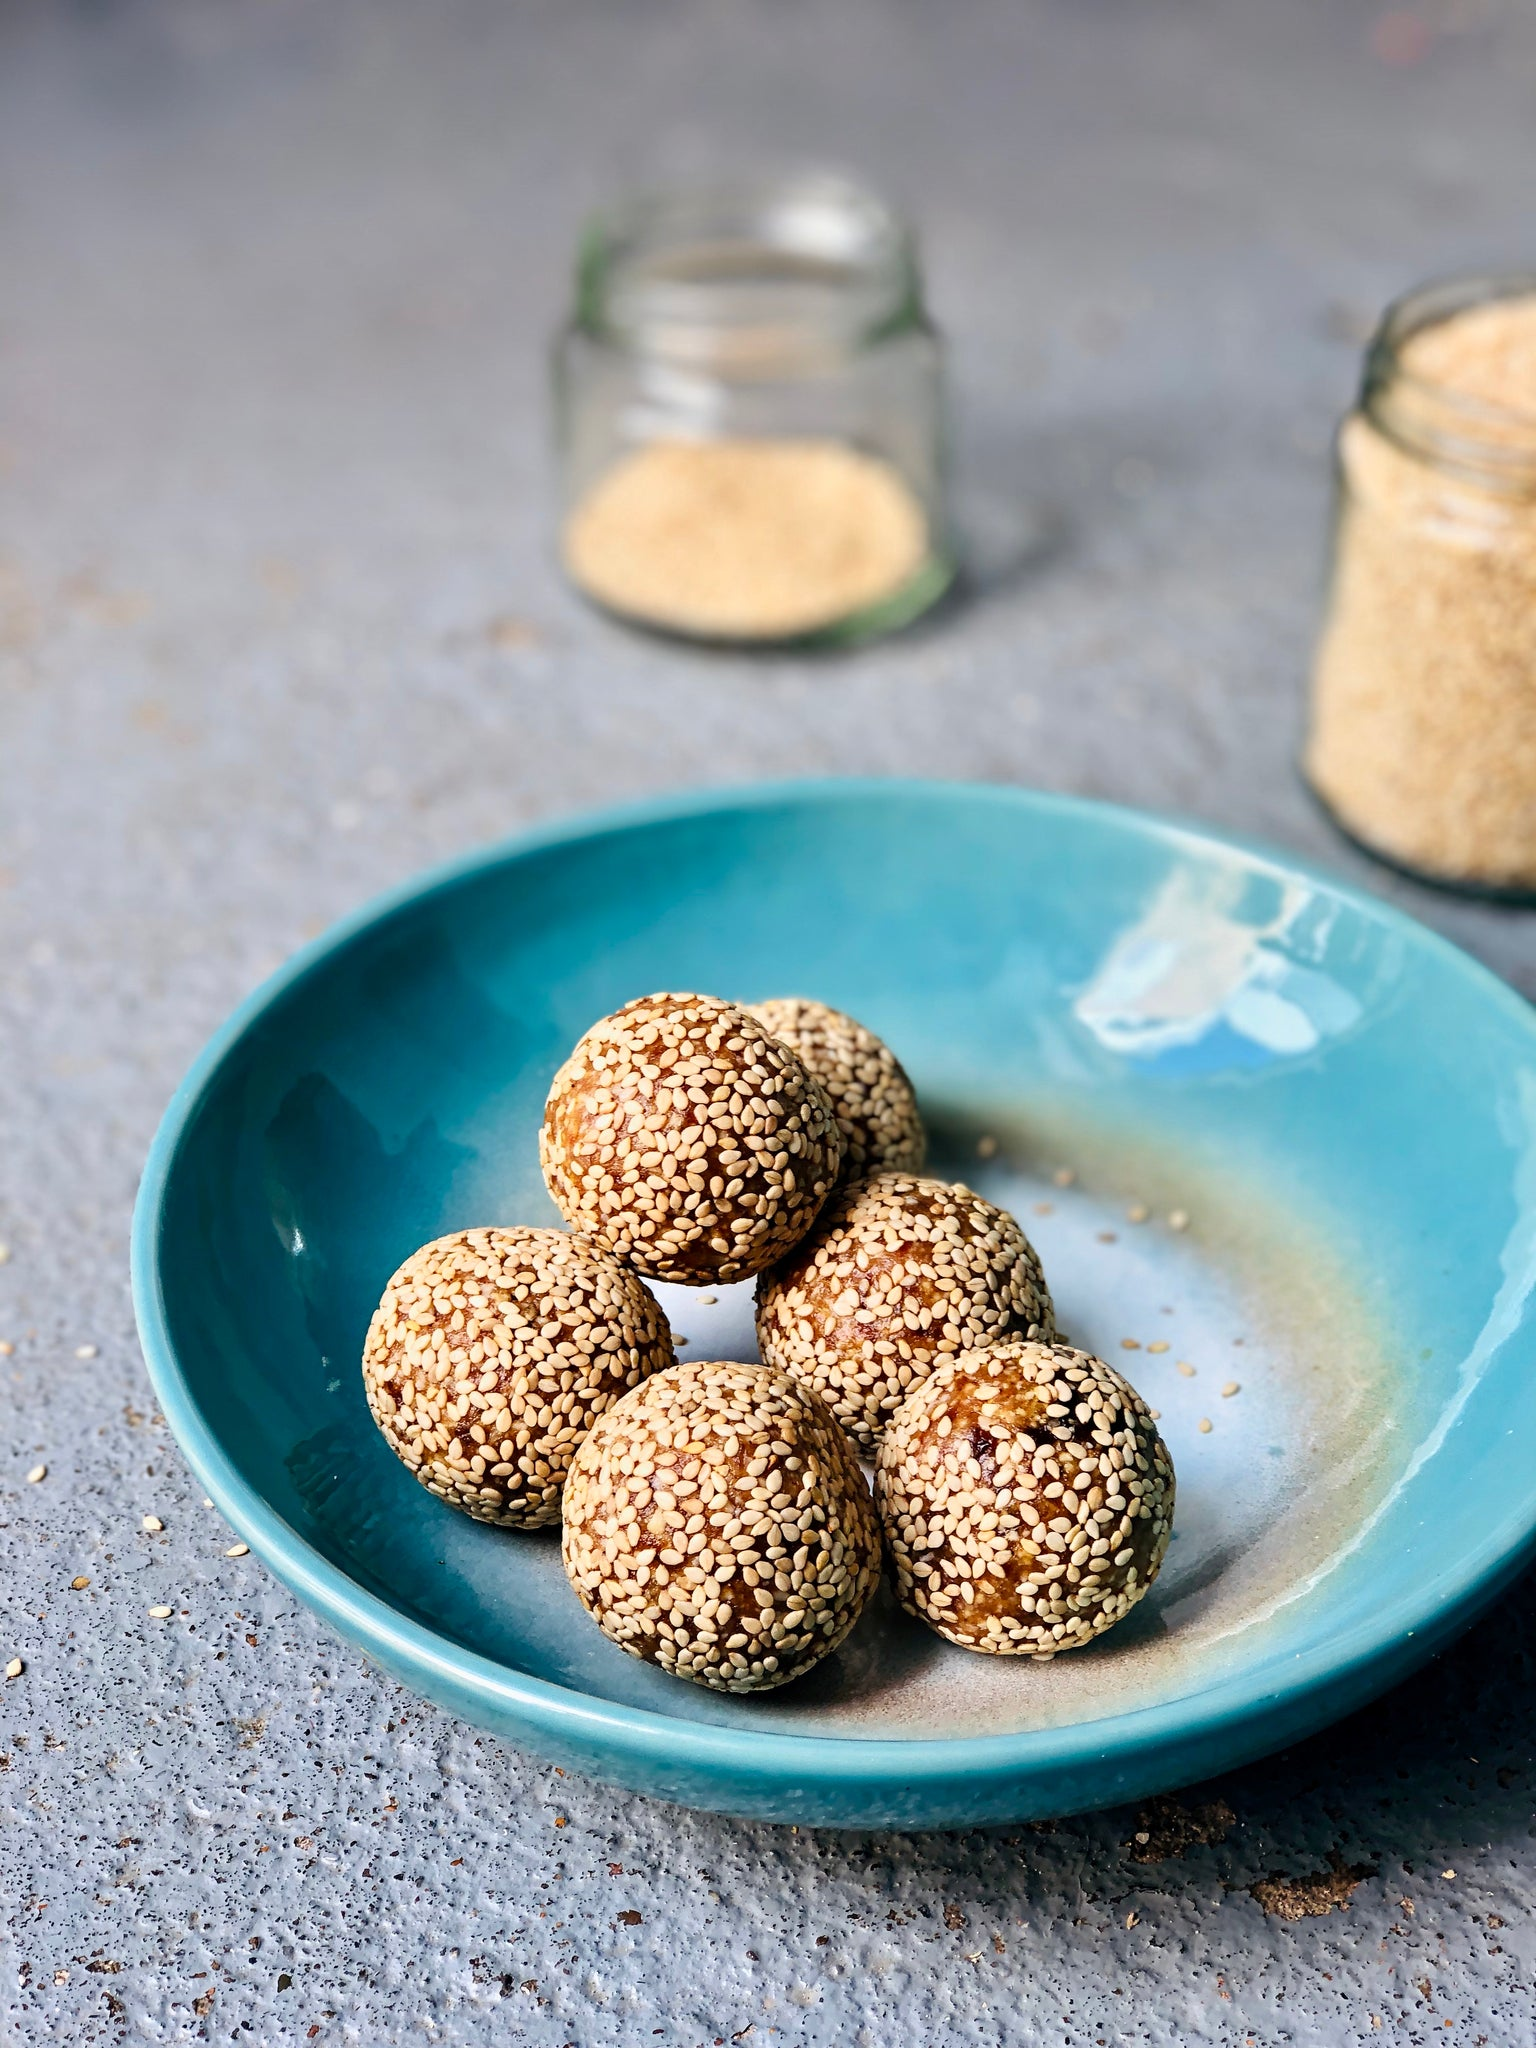 Recipe | Salted Caramel Bliss Balls with a Turmeric Twist (GF and Vegan)